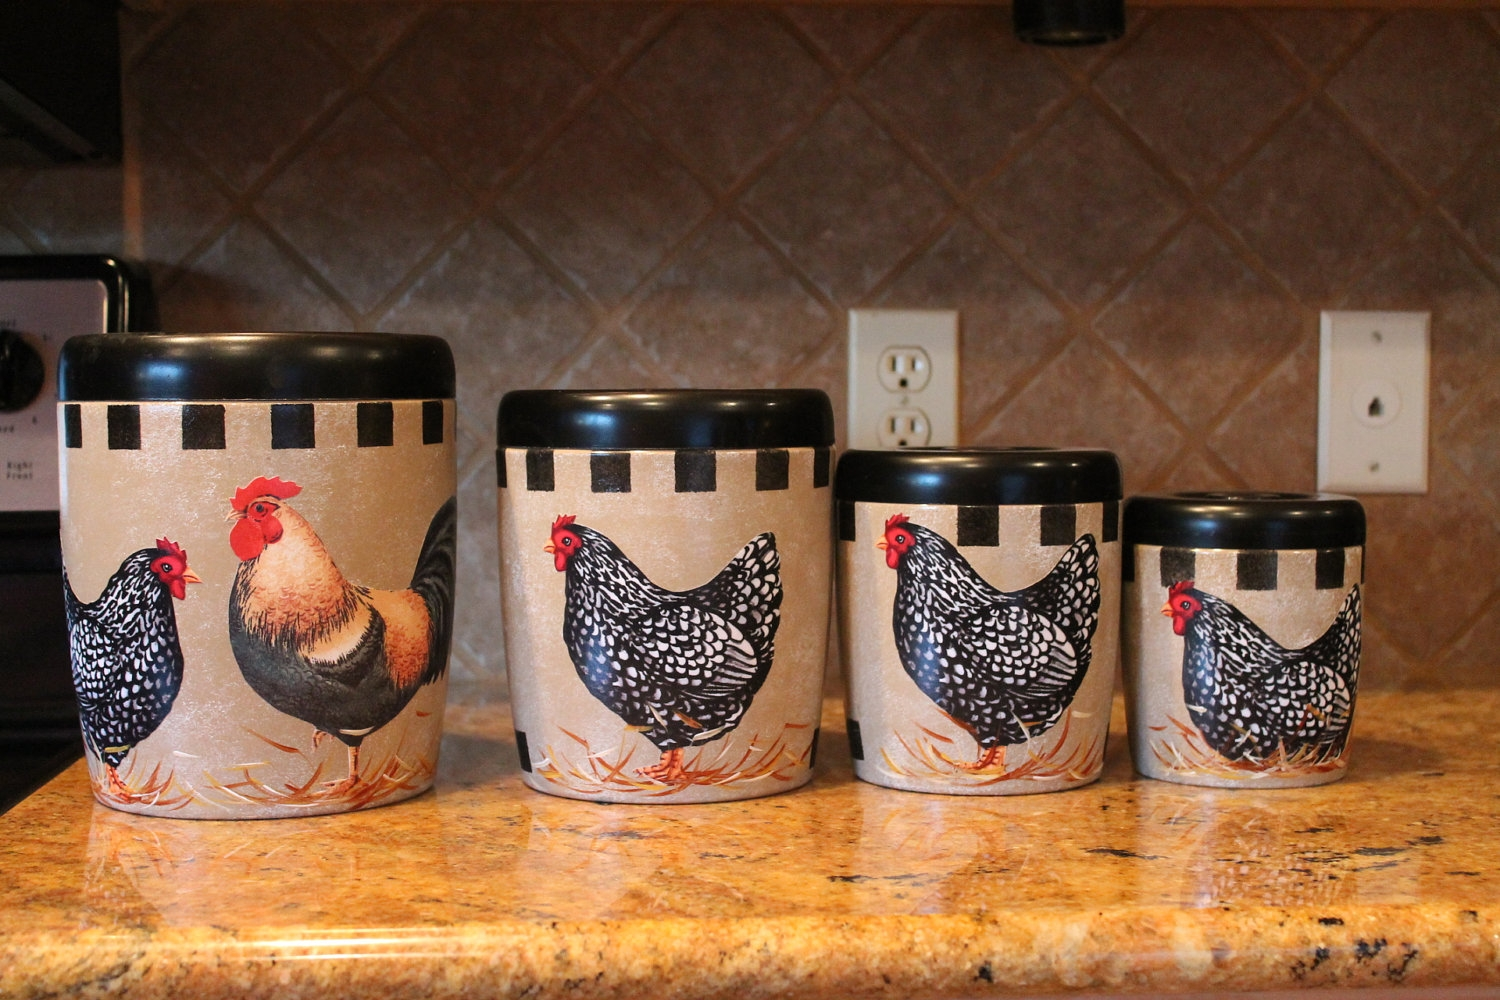 Rooster Kitchen Canister Sets Rooster Kitchen Canister Sets decorative kitchen canisters colorful canisters vintage 1500 X 1000